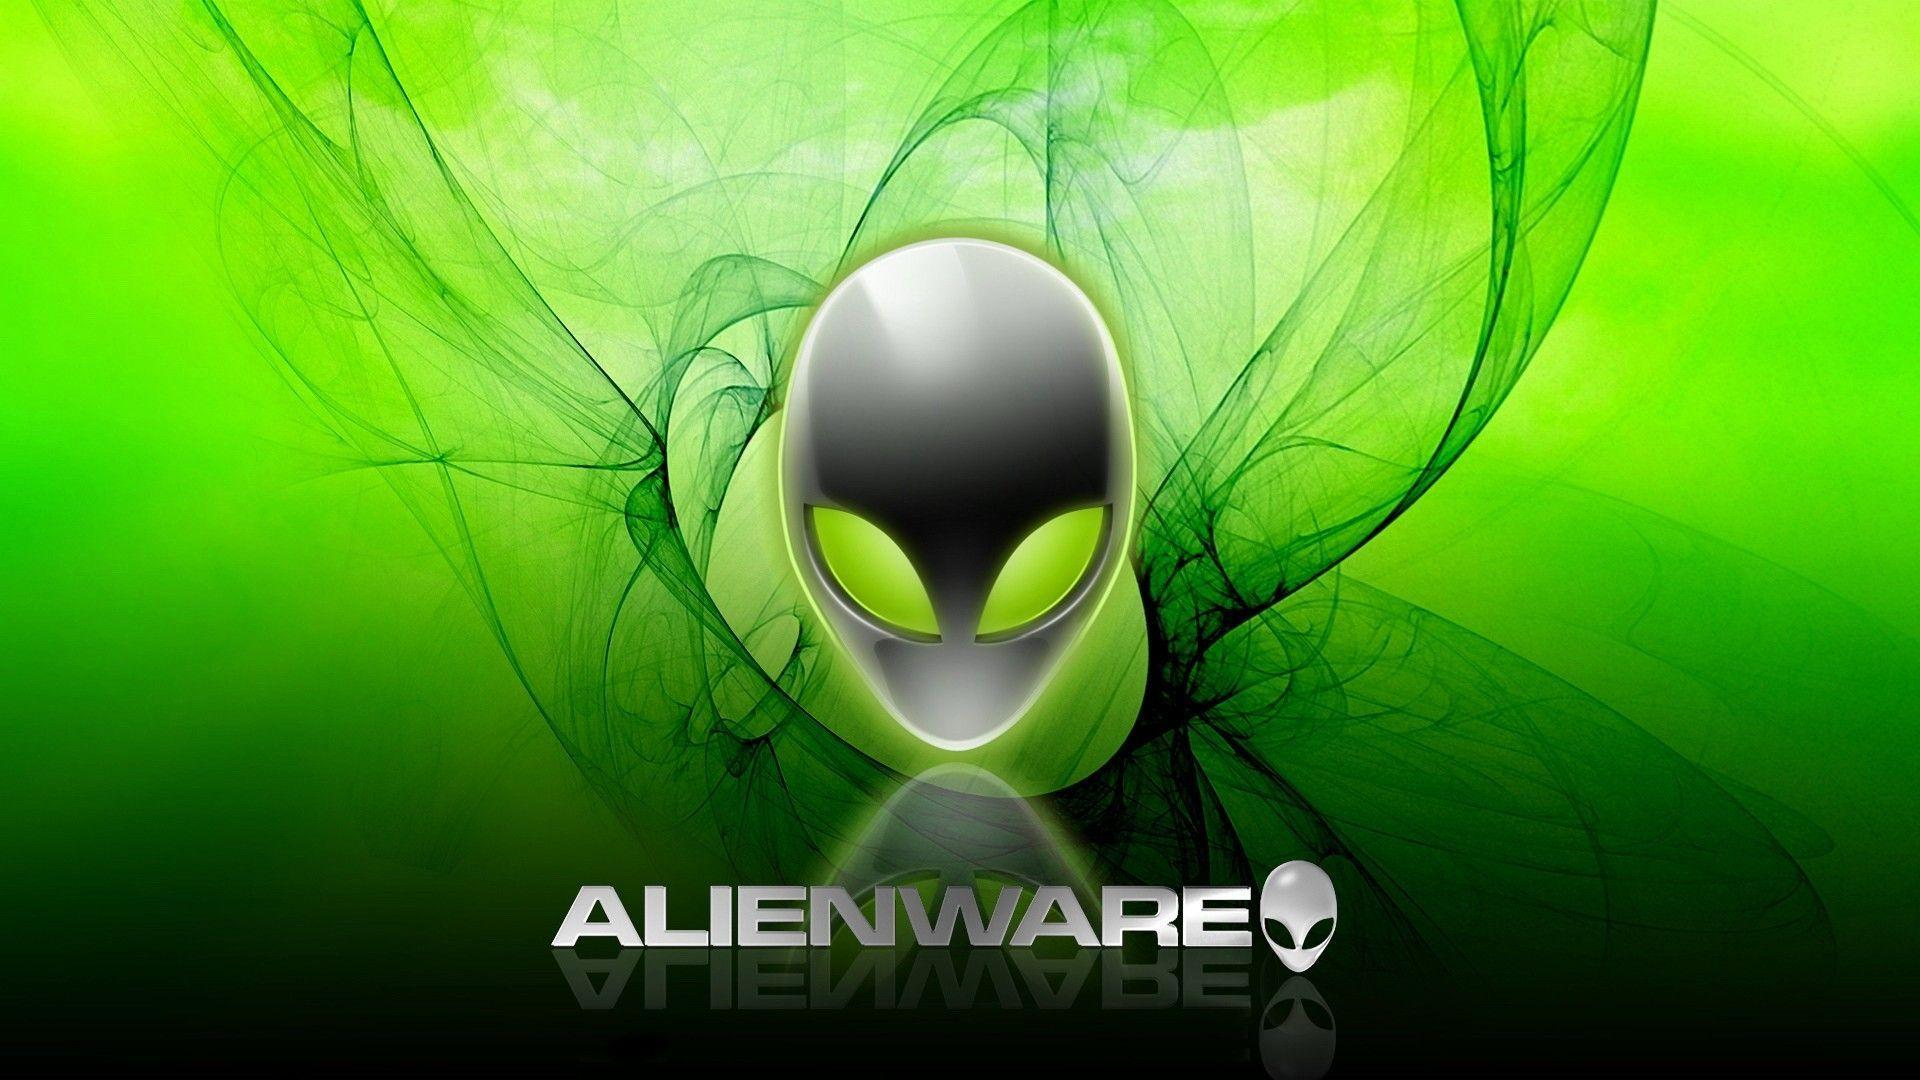 alienware wallpaper green hd - photo #8